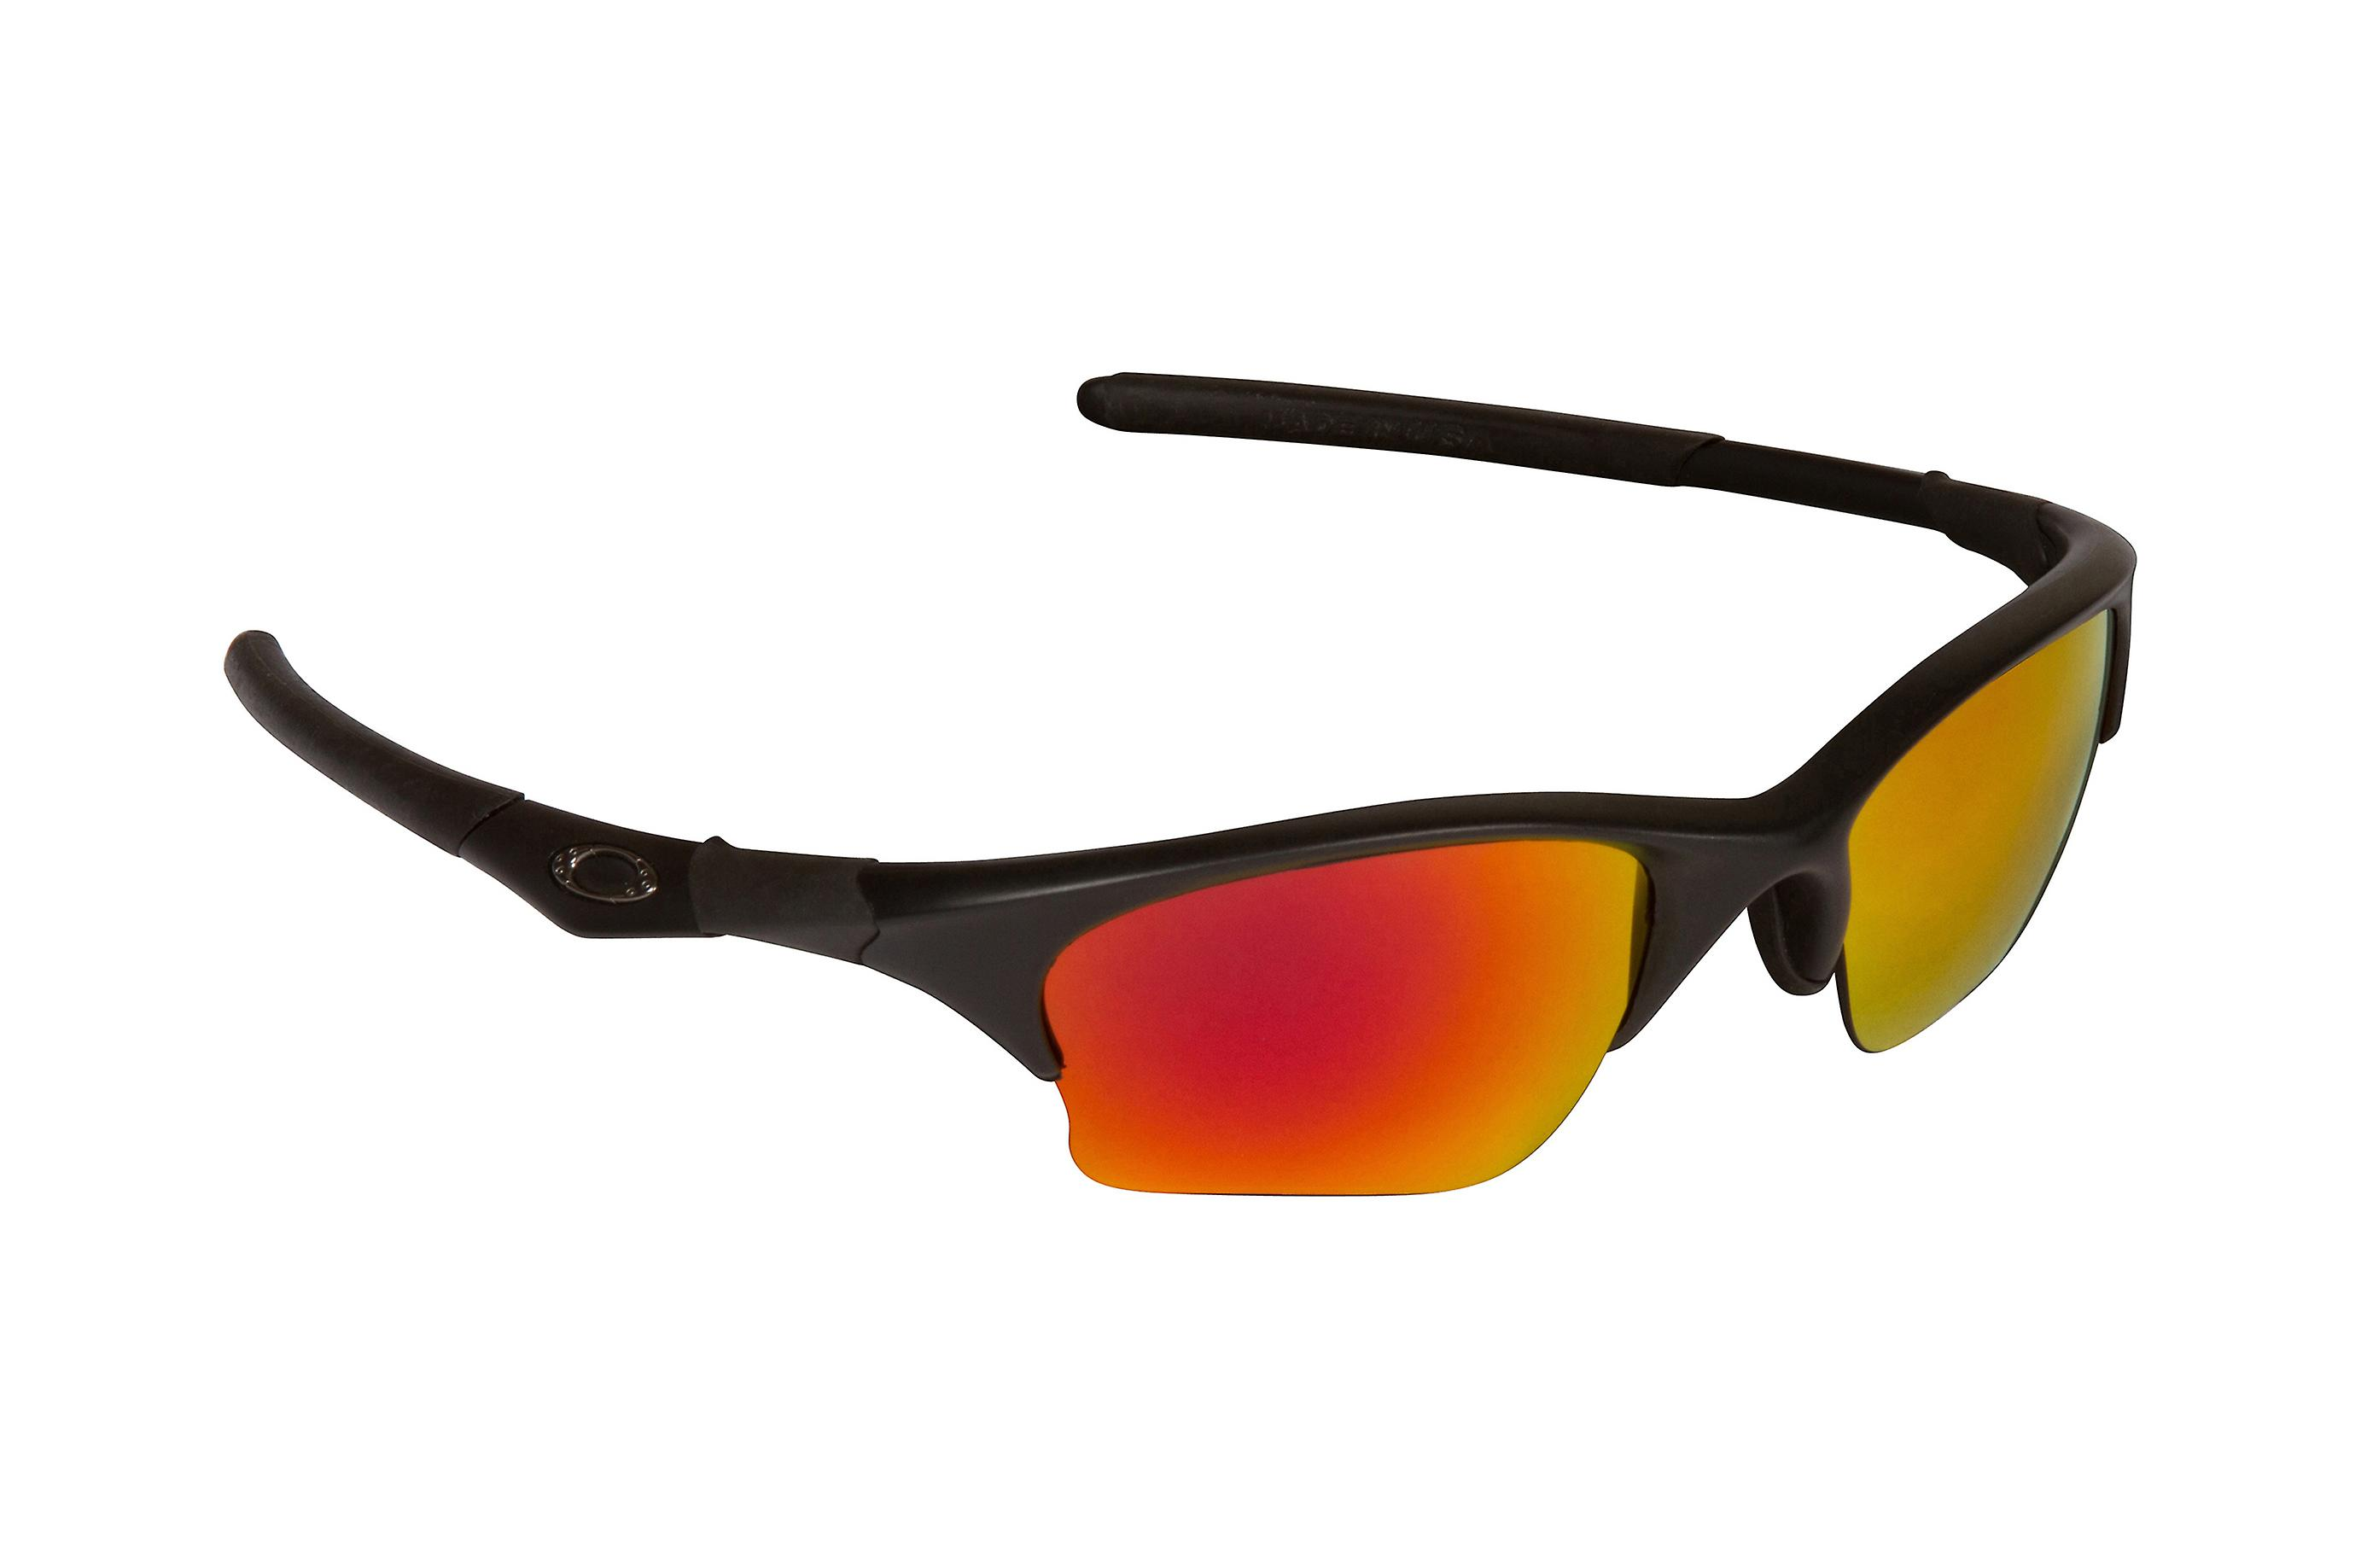 a41ab862da3bb Half Jacket XLJ Replacement Lenses Silver   Red by SEEK fits OAKLEY  Sunglasses